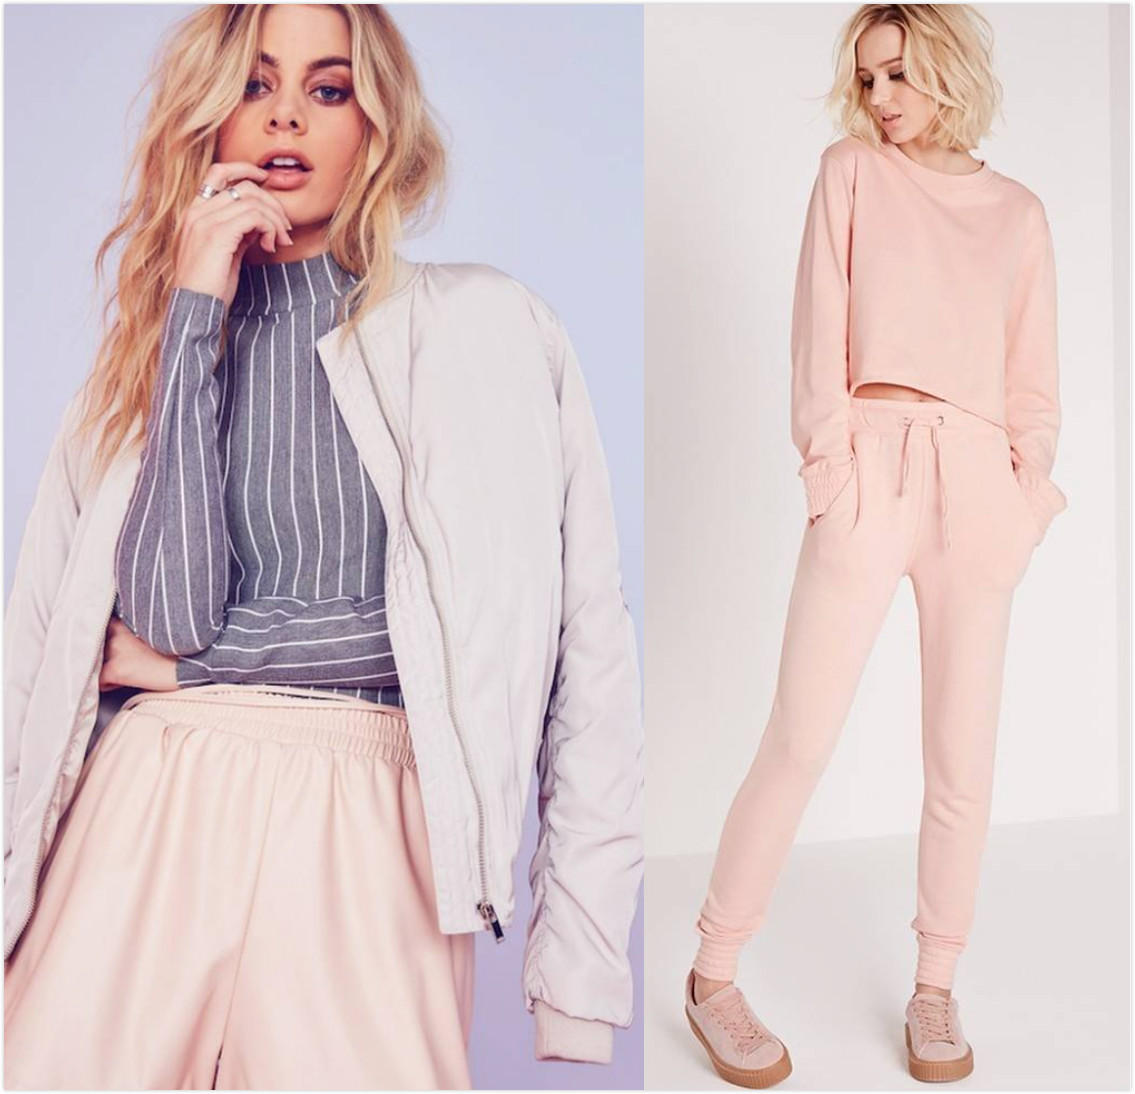 40% Off Missguided Women's Apparels On Sale @ Nordstrom